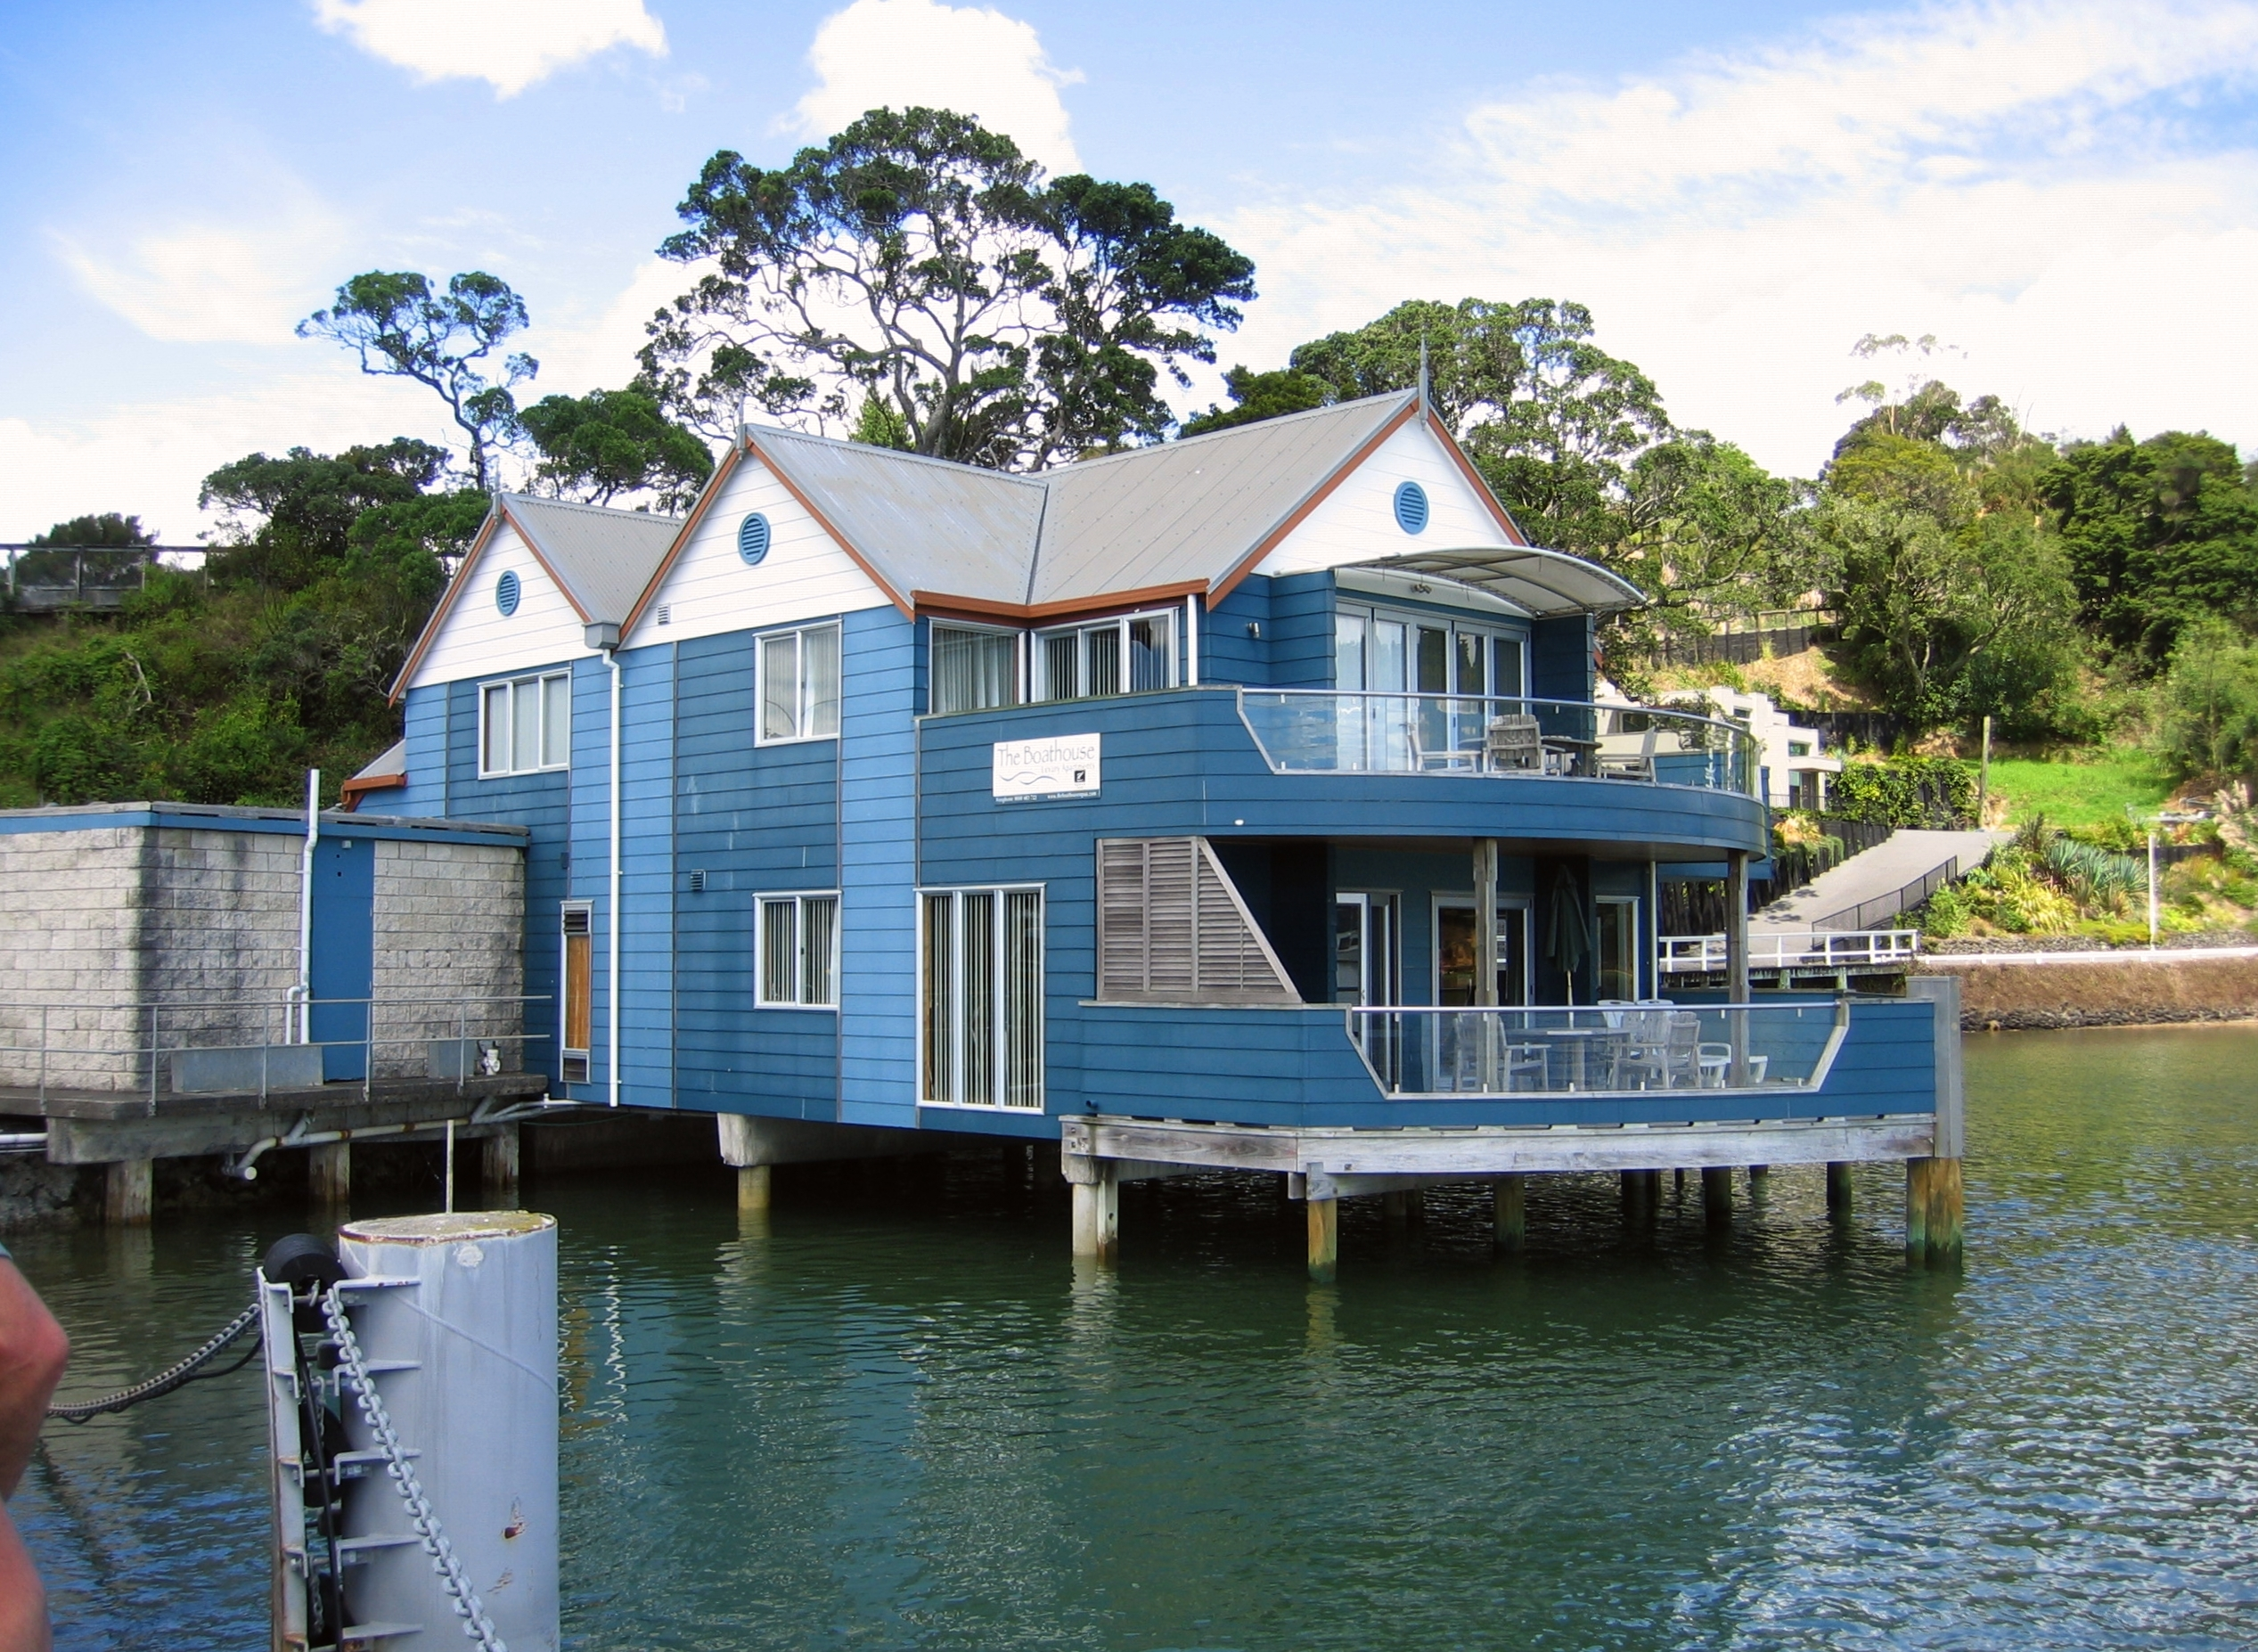 file house on the water 3383538584 jpg wikimedia commons. Black Bedroom Furniture Sets. Home Design Ideas